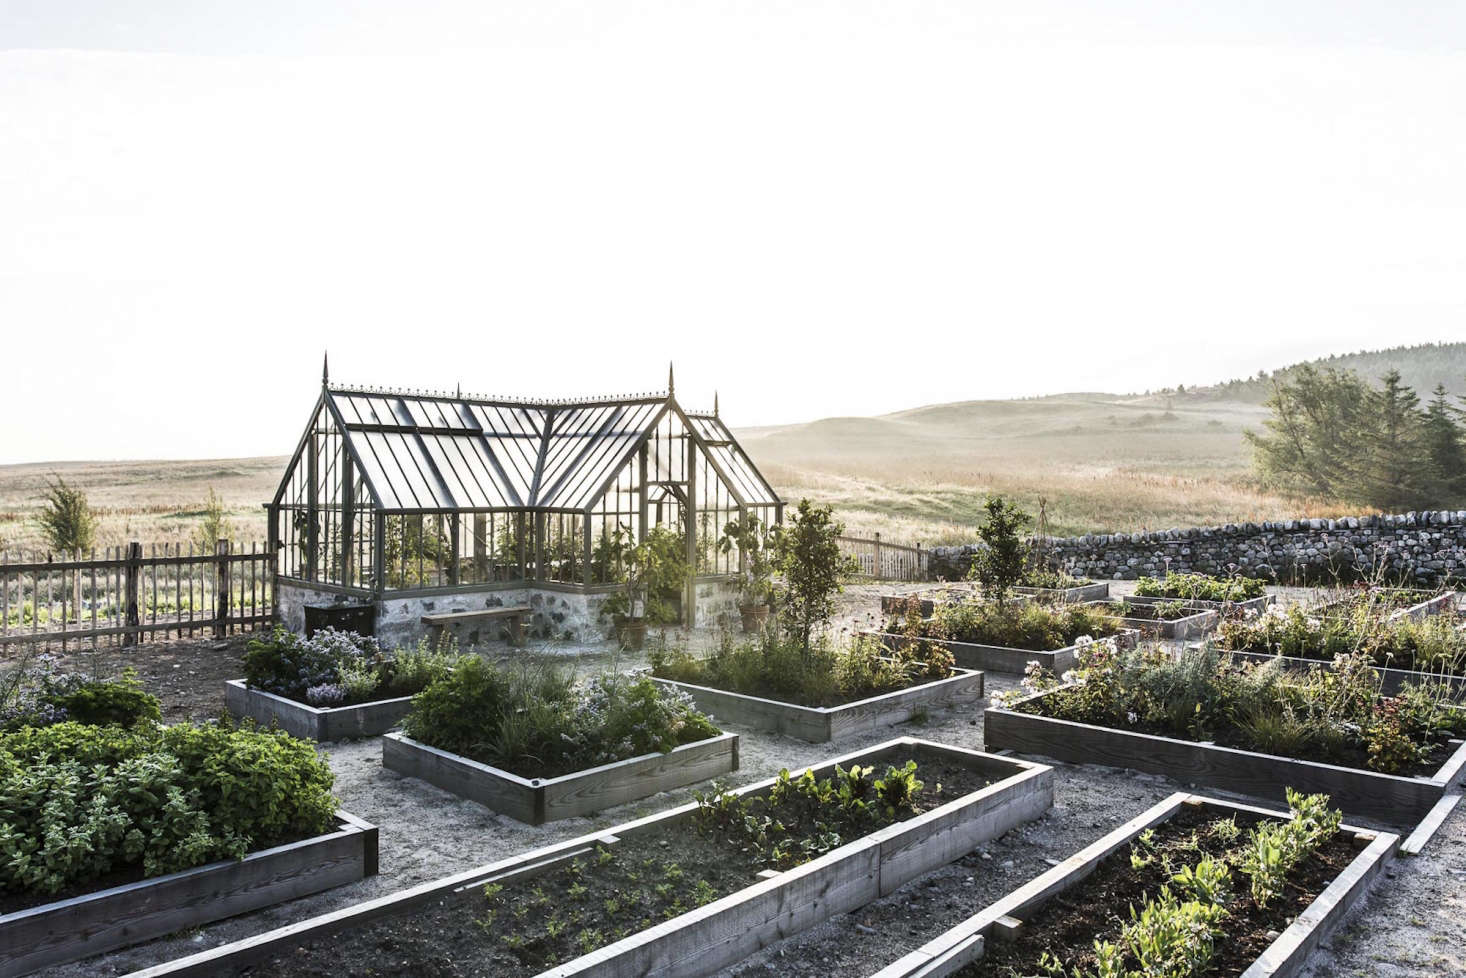 Killiehuntly has a large organic garden, bordered by a fence and low stone walls, with rows of raised beds for fruits and vegetables. The produce supplies daily meals in summer and fall, and the kitchen draws fromits larder in the winter and early spring.